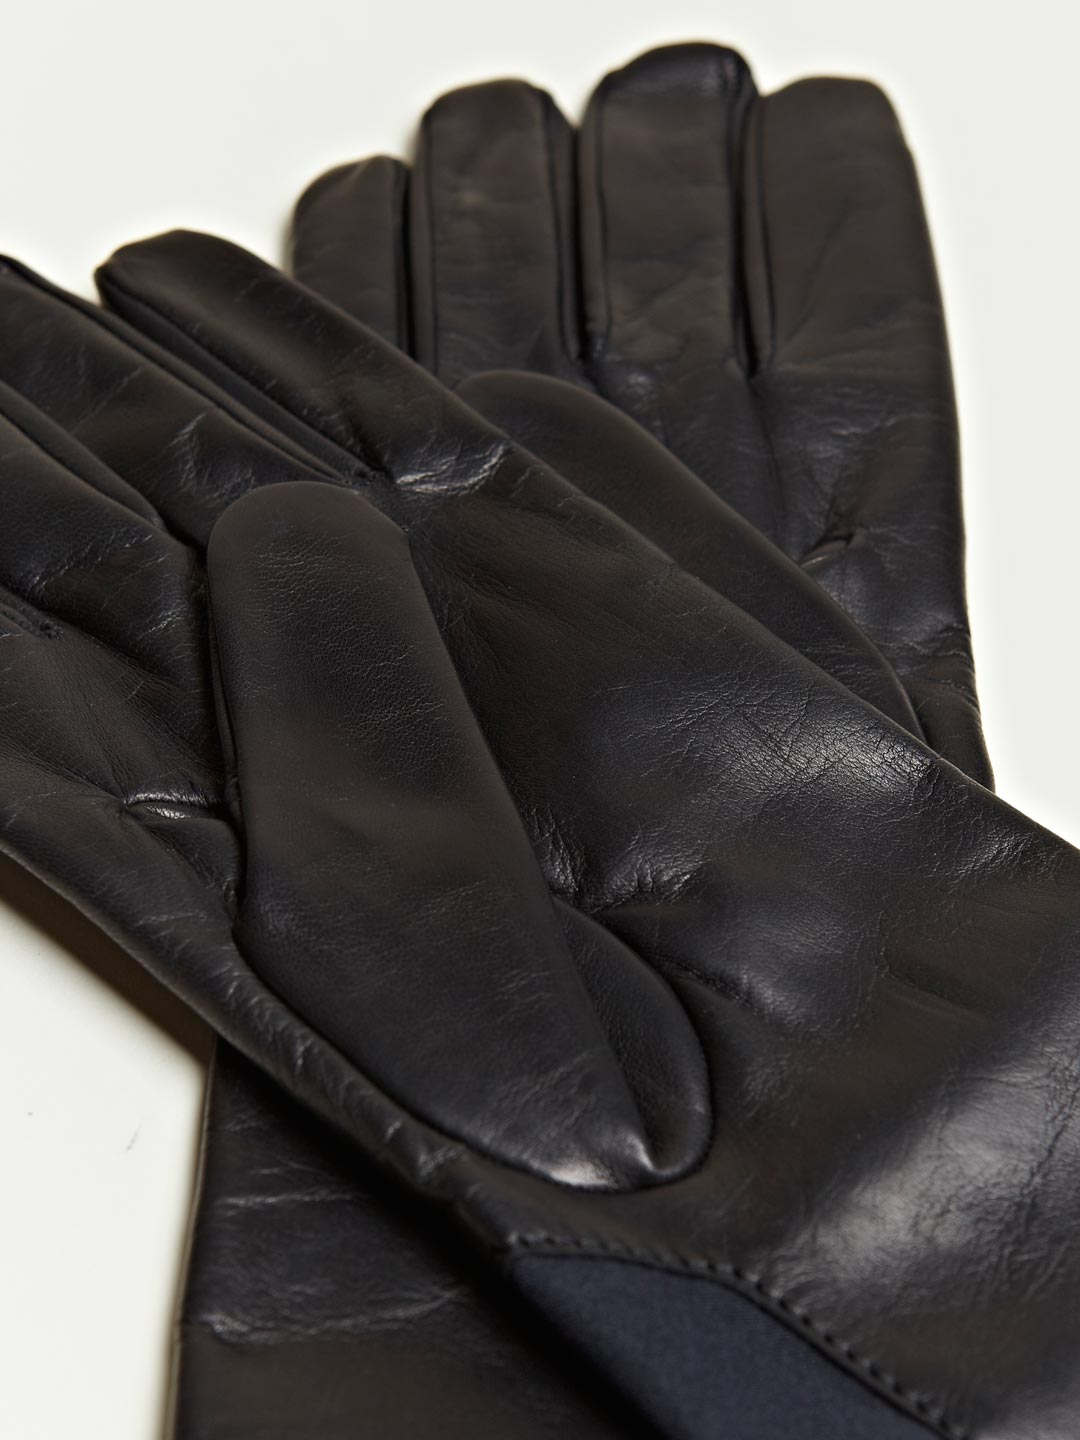 Fingerless leather gloves mens accessories - Gallery Previously Sold At Ln Cc Men S Leather Gloves